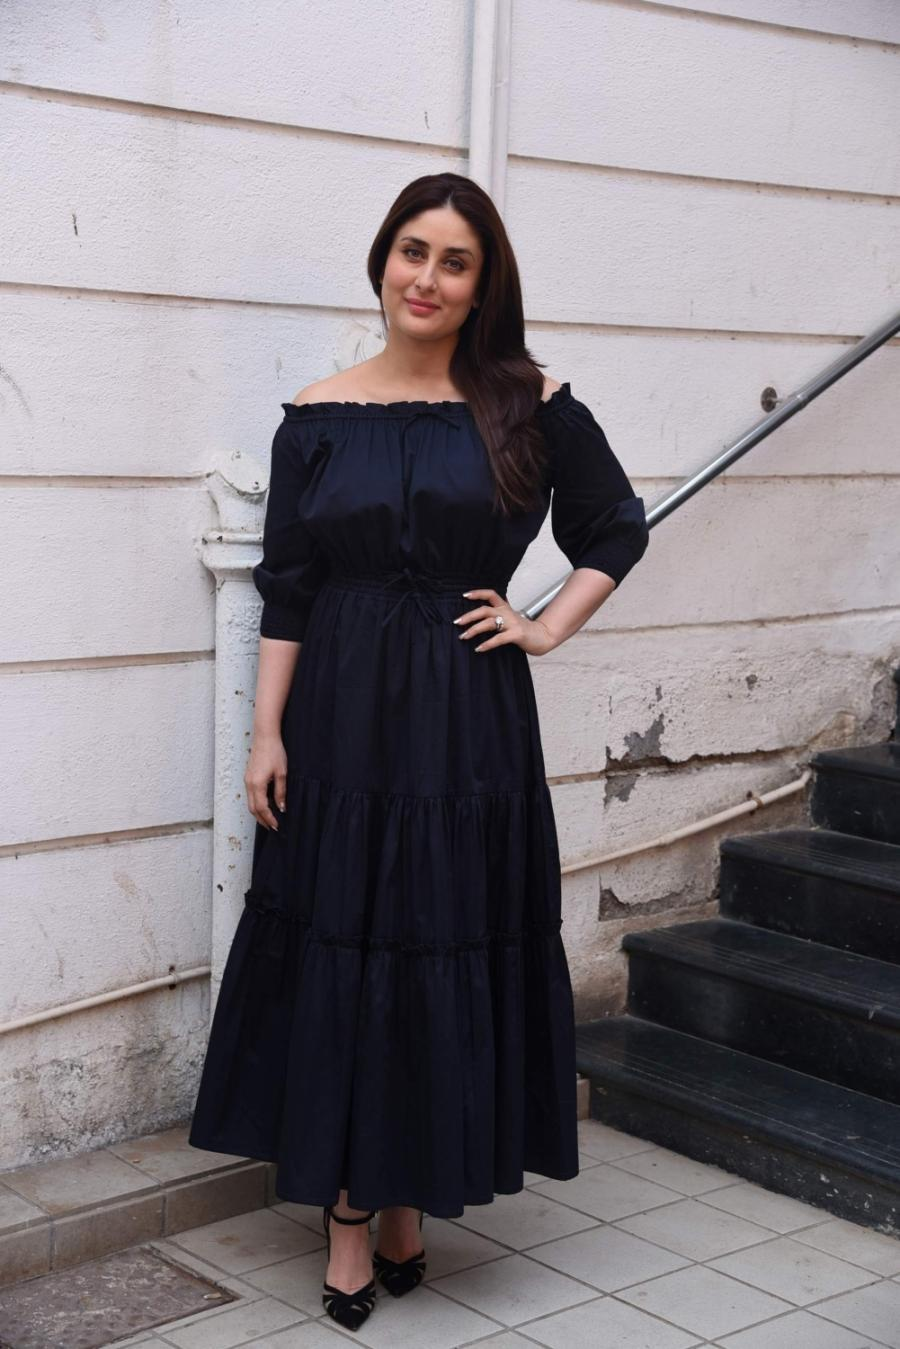 Kareena Kapoor Photoshoot In Long Hair Blue Dress